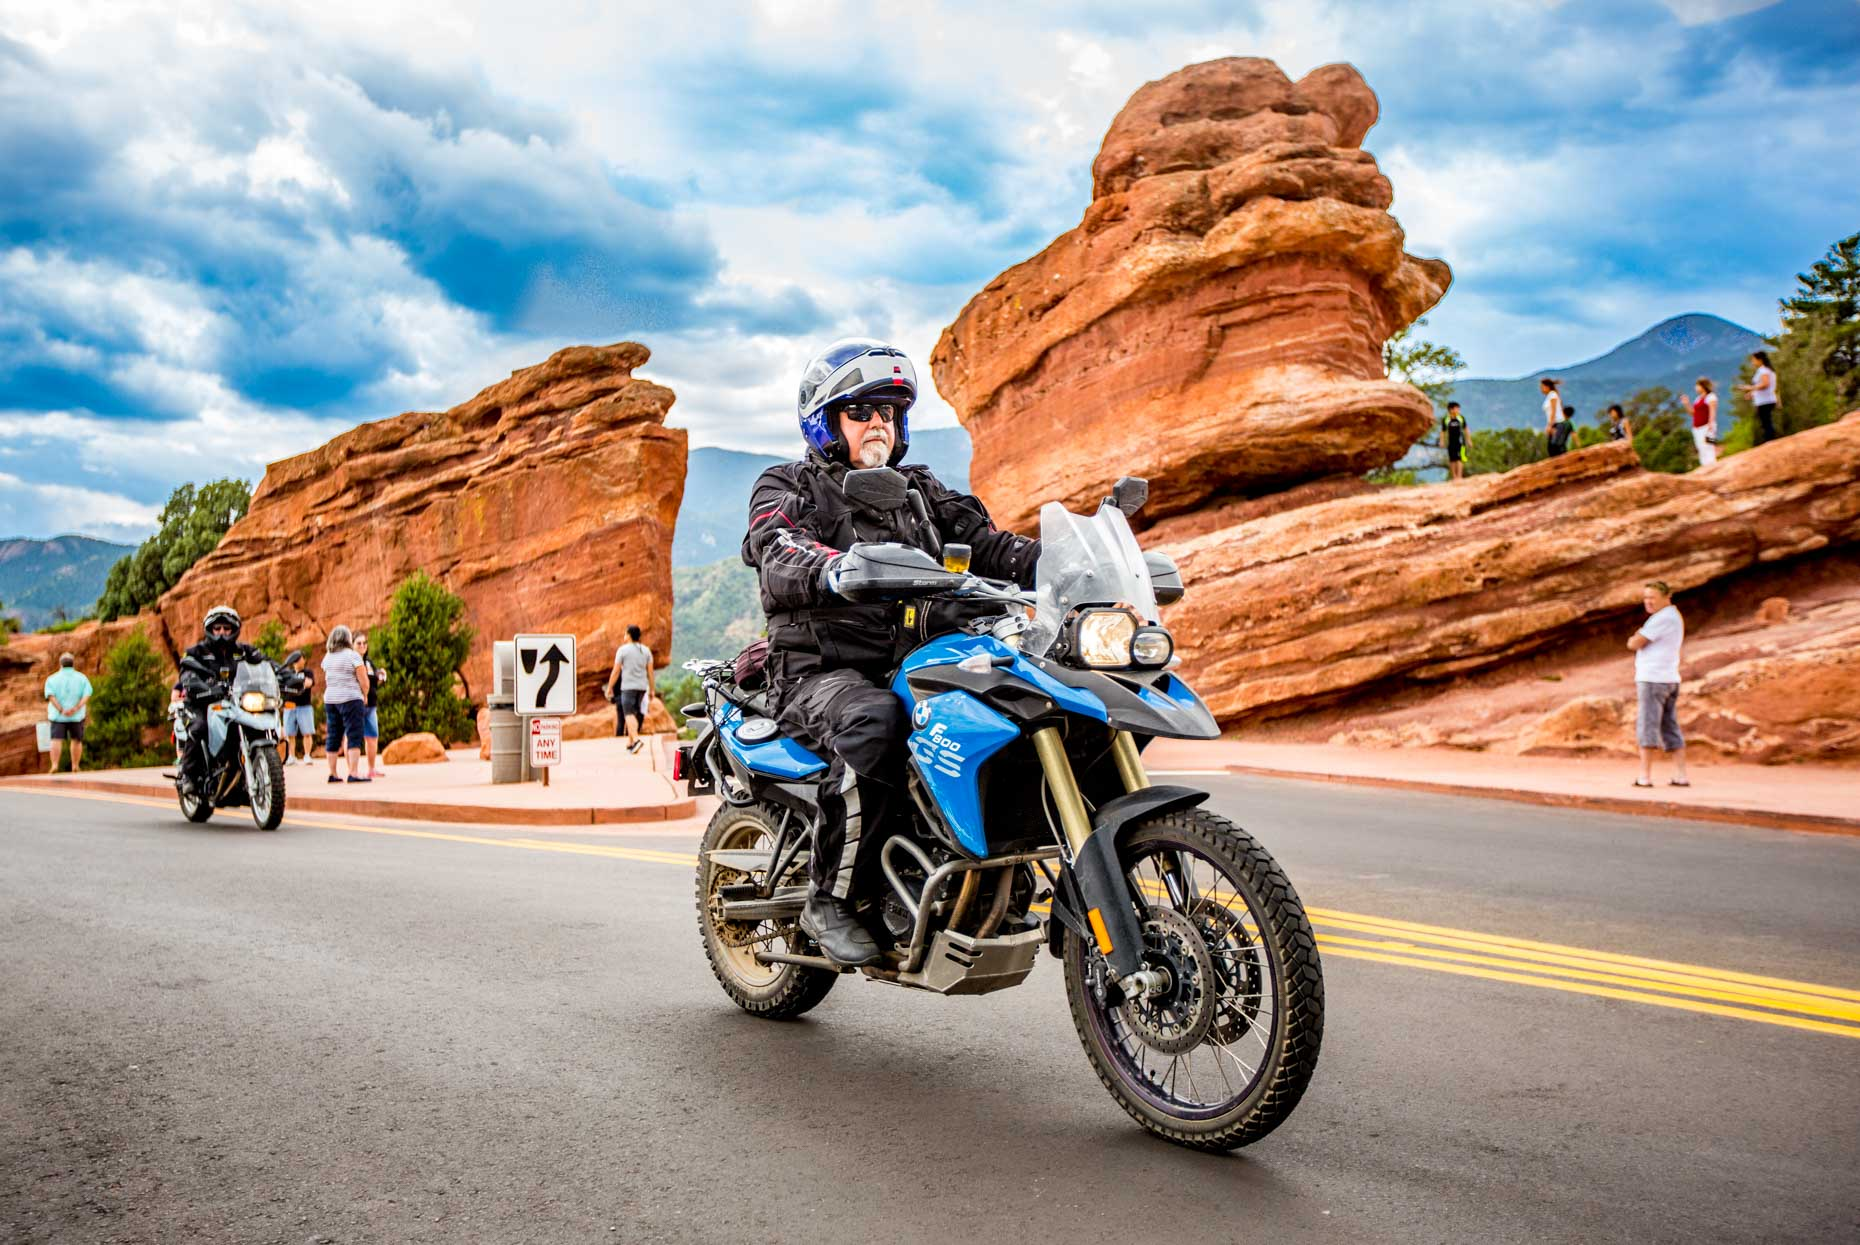 04 Motorcycle Relief Project BMW GS Adventure Riding PTSD Veterans Garden of the Gods